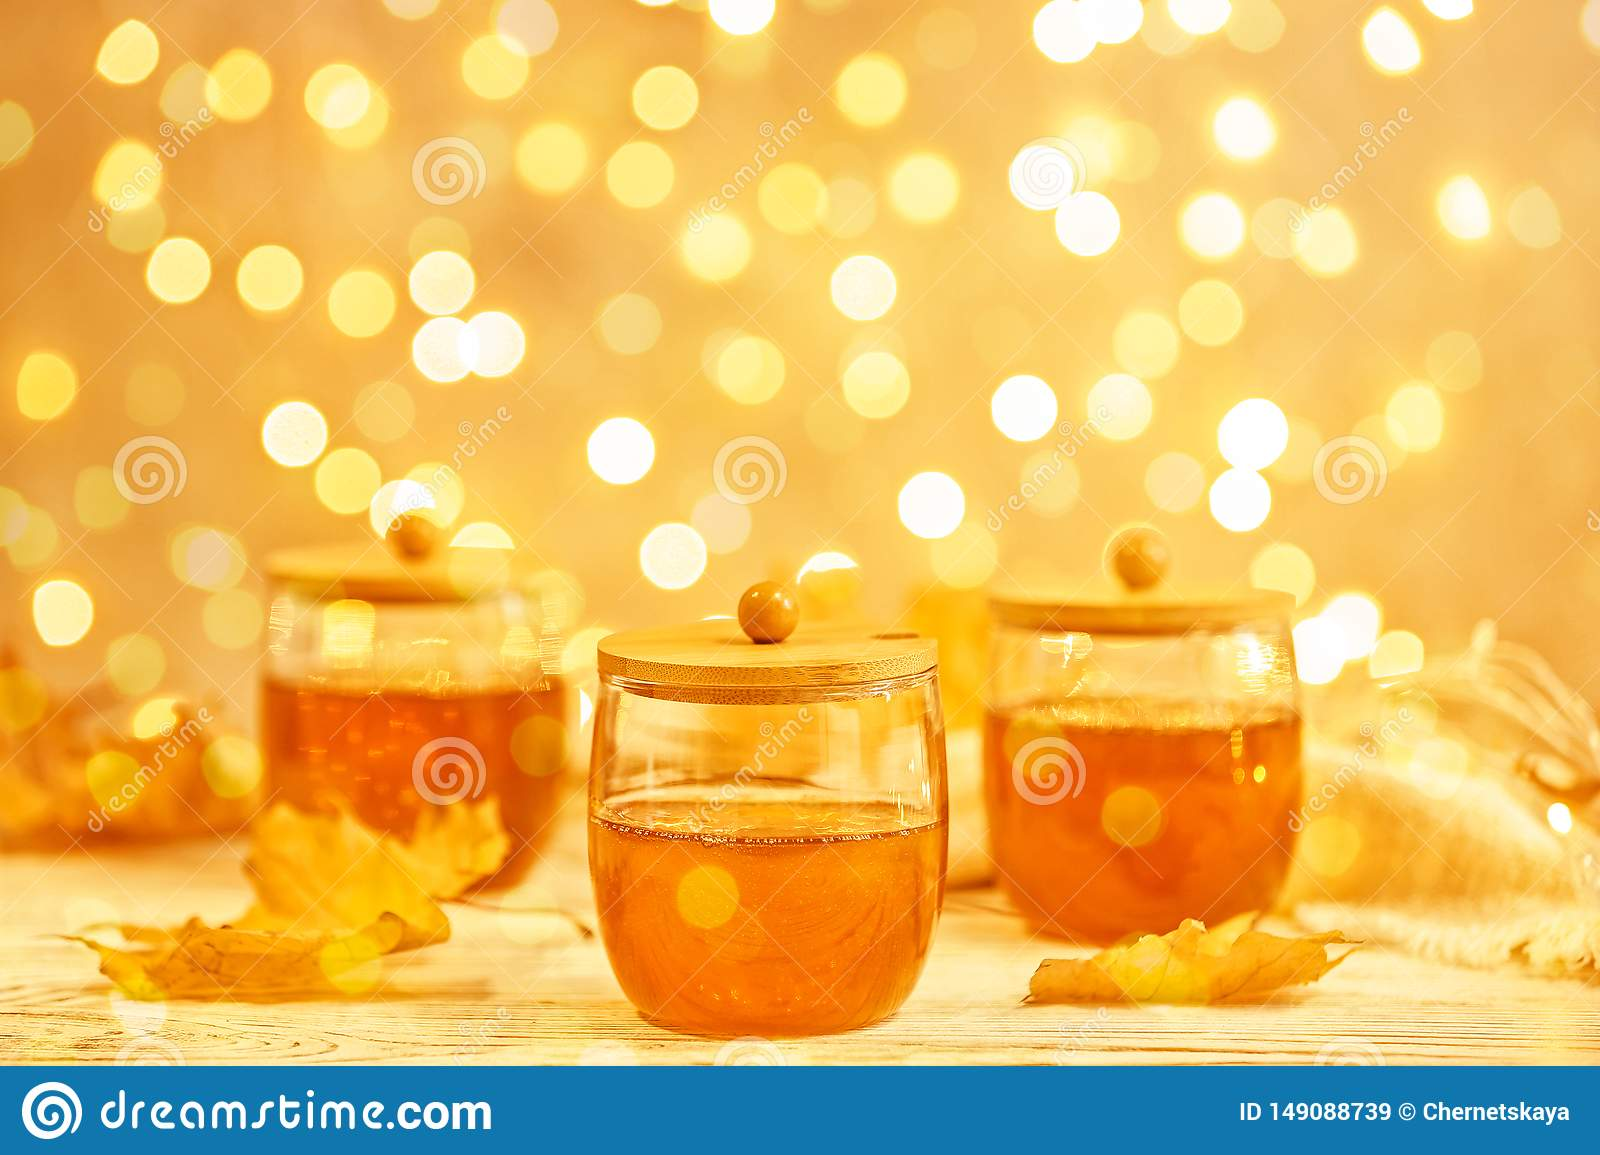 Glass jars with sweet honey on table against blurred lights